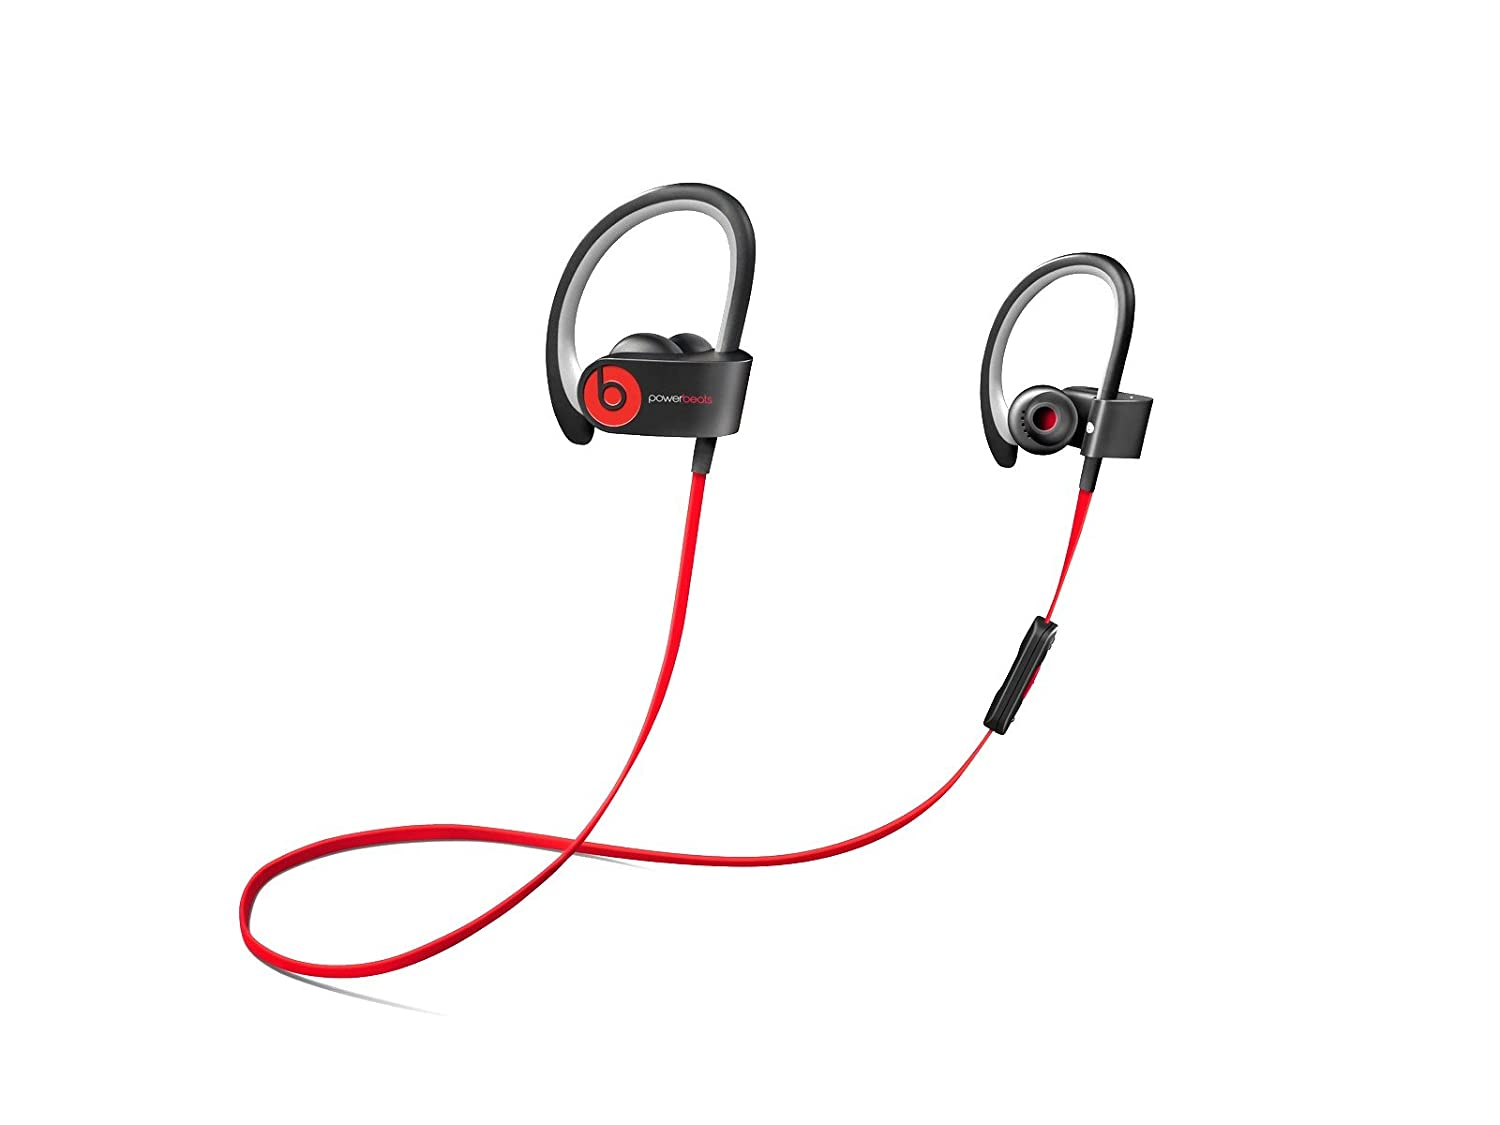 Best cordless earbuds for bass